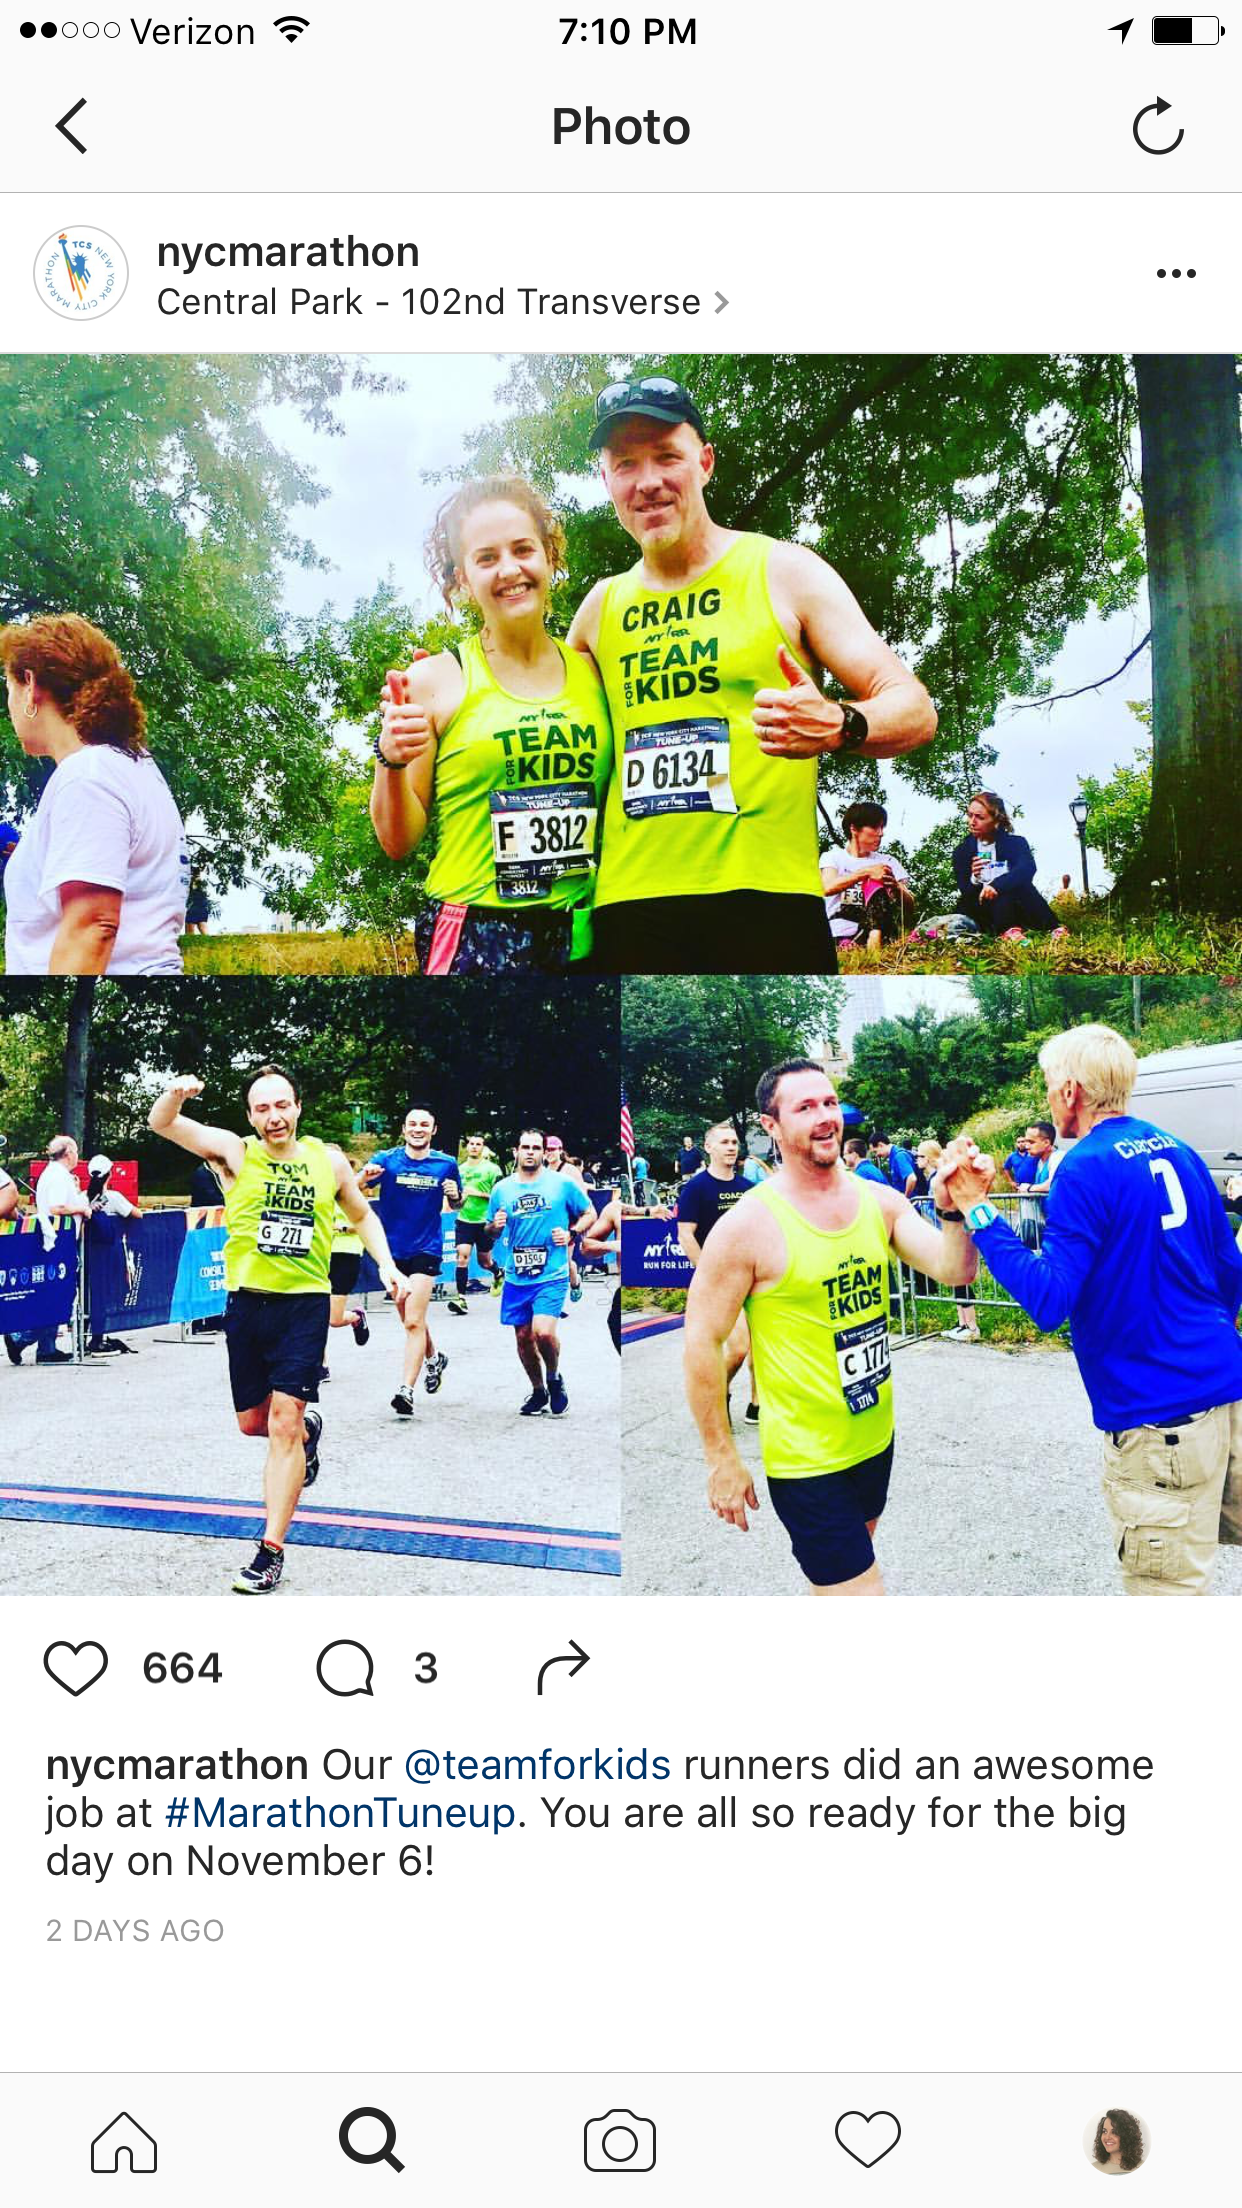 @nycmarathon Feature!